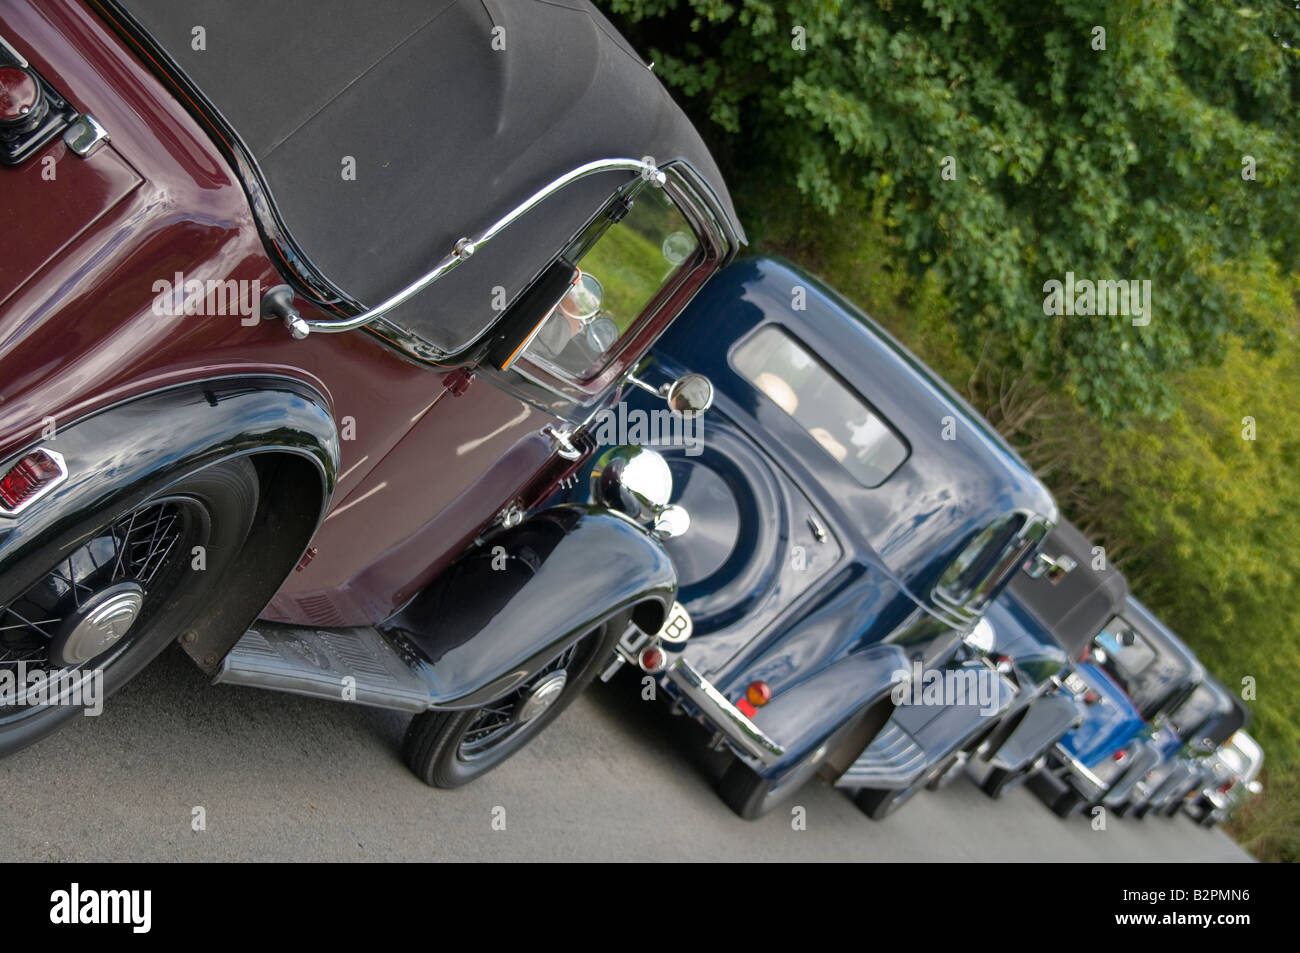 Classic Cars 1930s Stock Photos & Classic Cars 1930s Stock Images ...